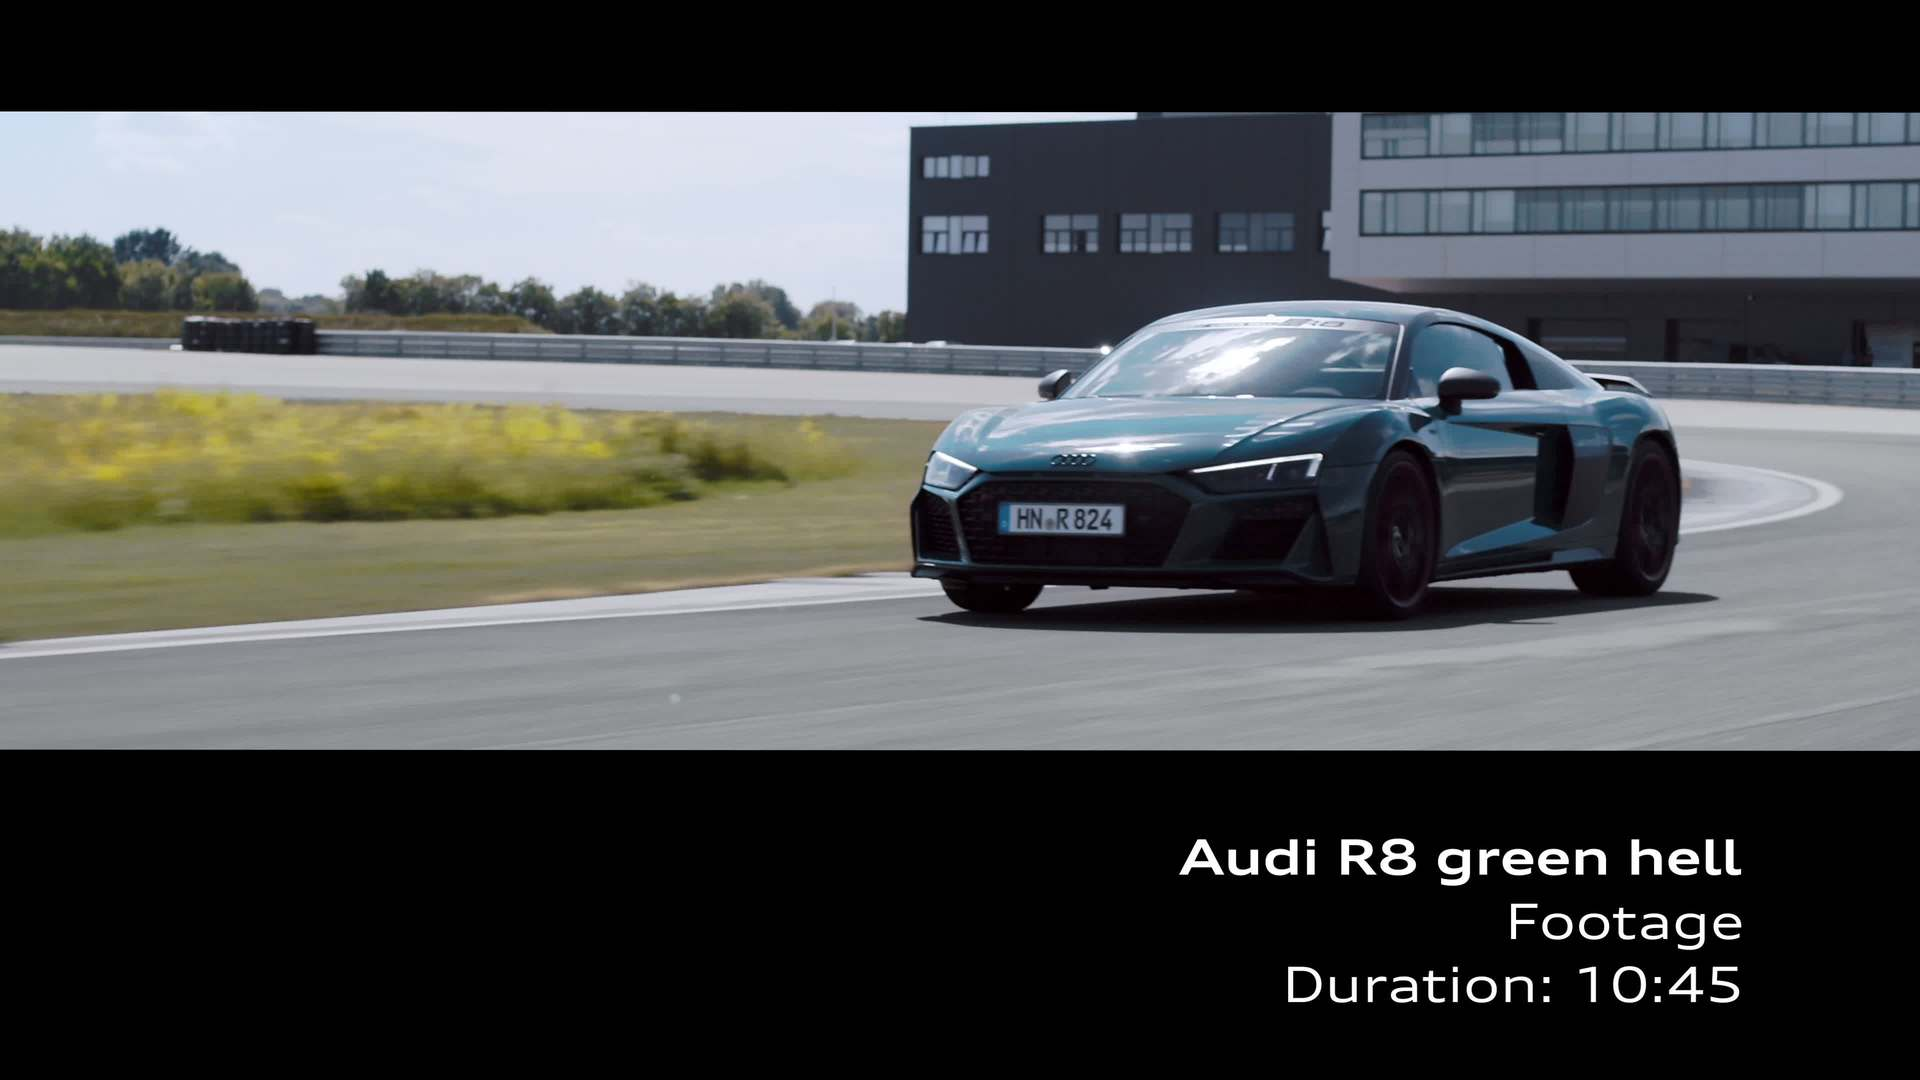 Footage: Audi R8 green hell